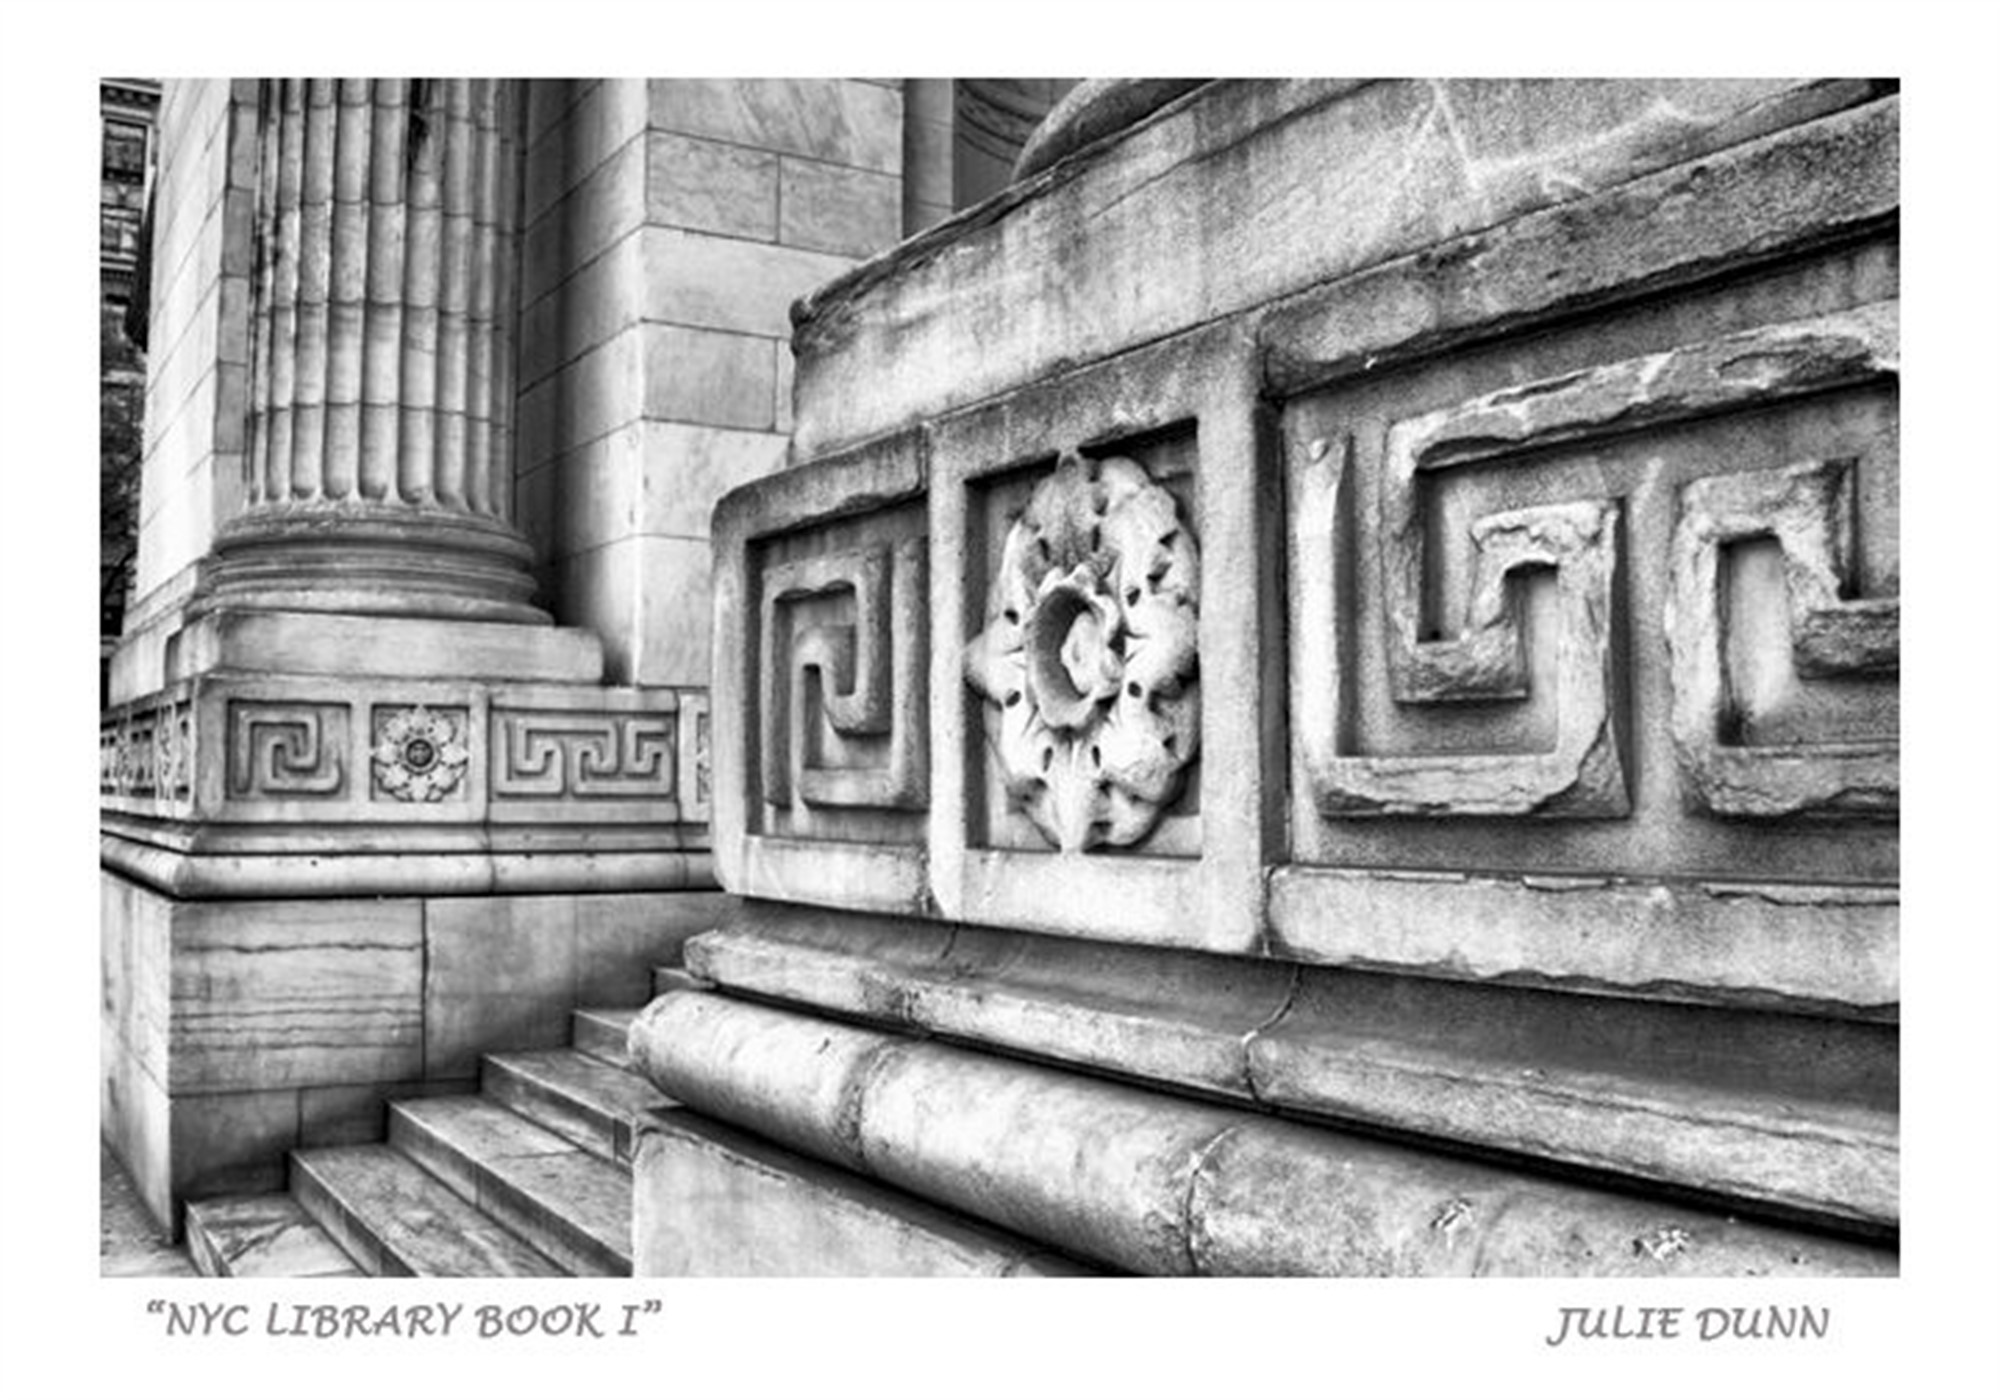 NYC Library Book I by Julie Dunn